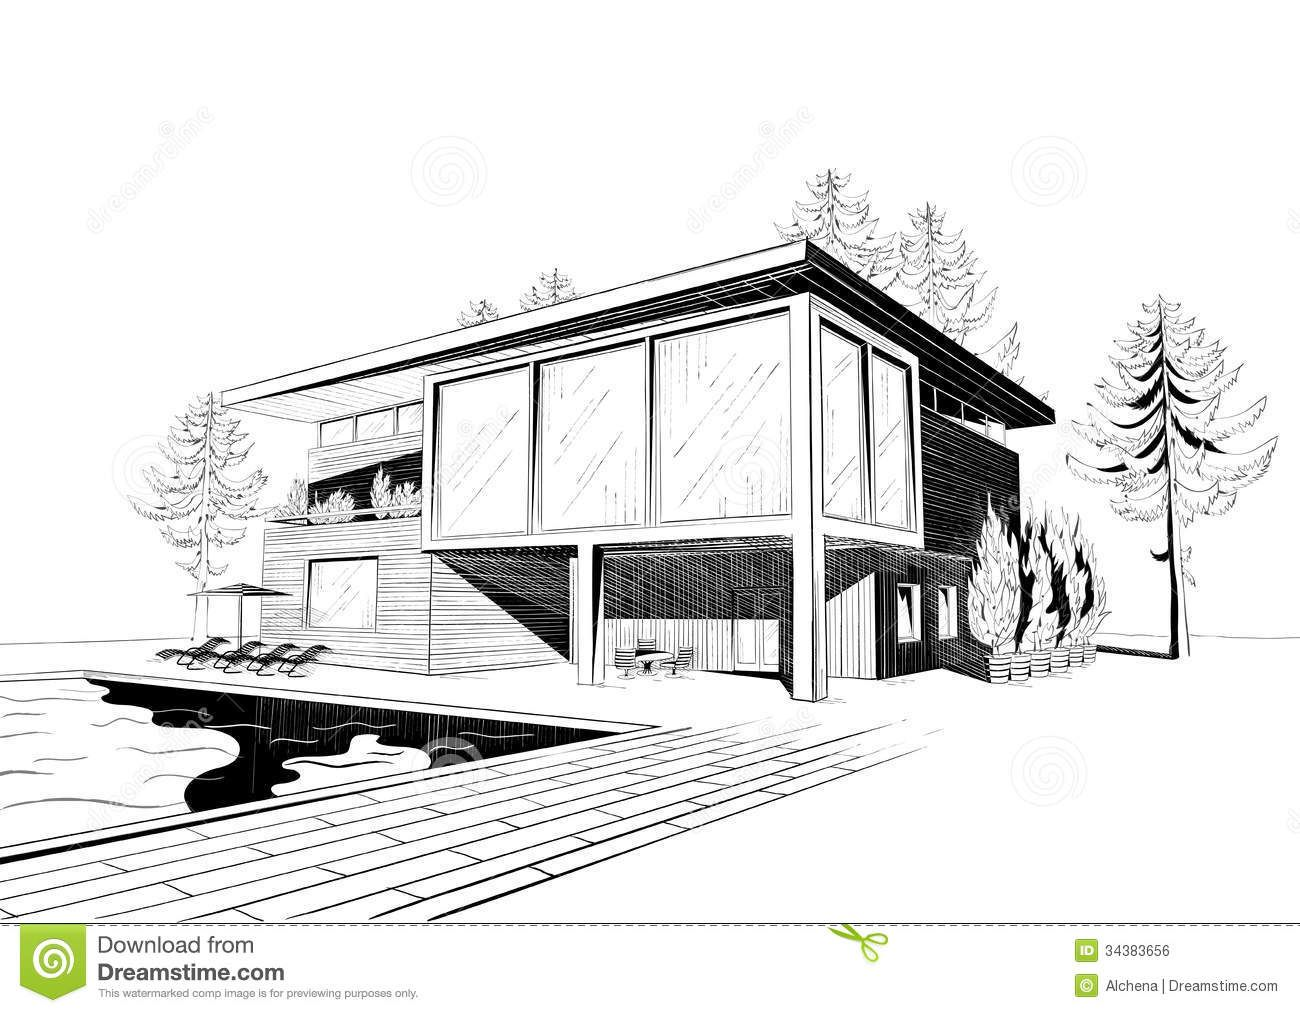 Excellent modern home architecture sketches on home design for Architecture design drawing